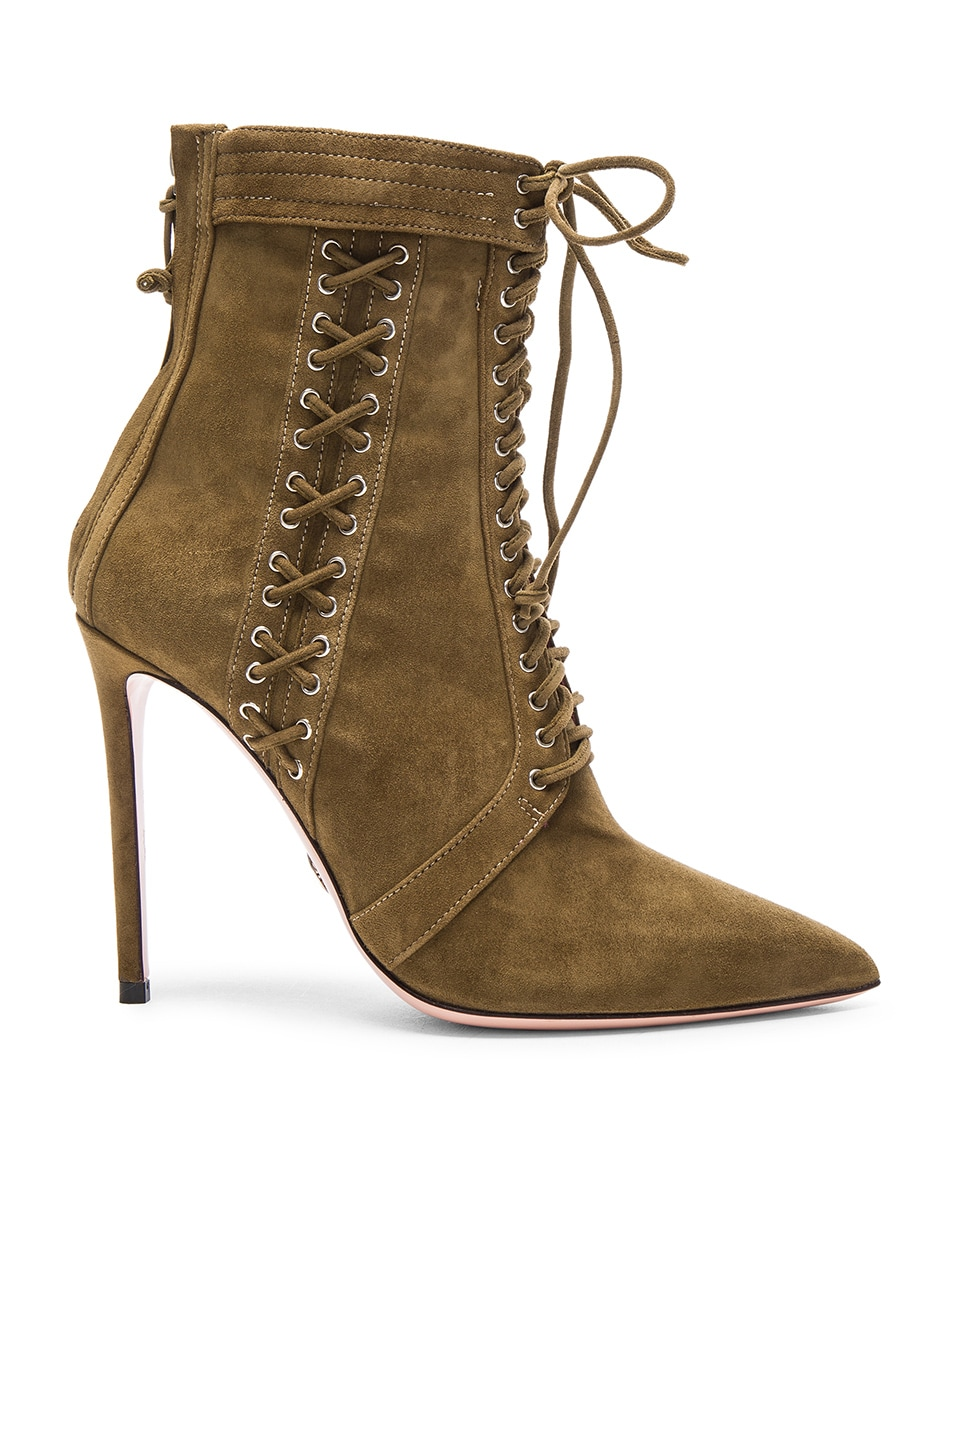 Image 1 of Oscar Tiye Samira Suede Booties in Military